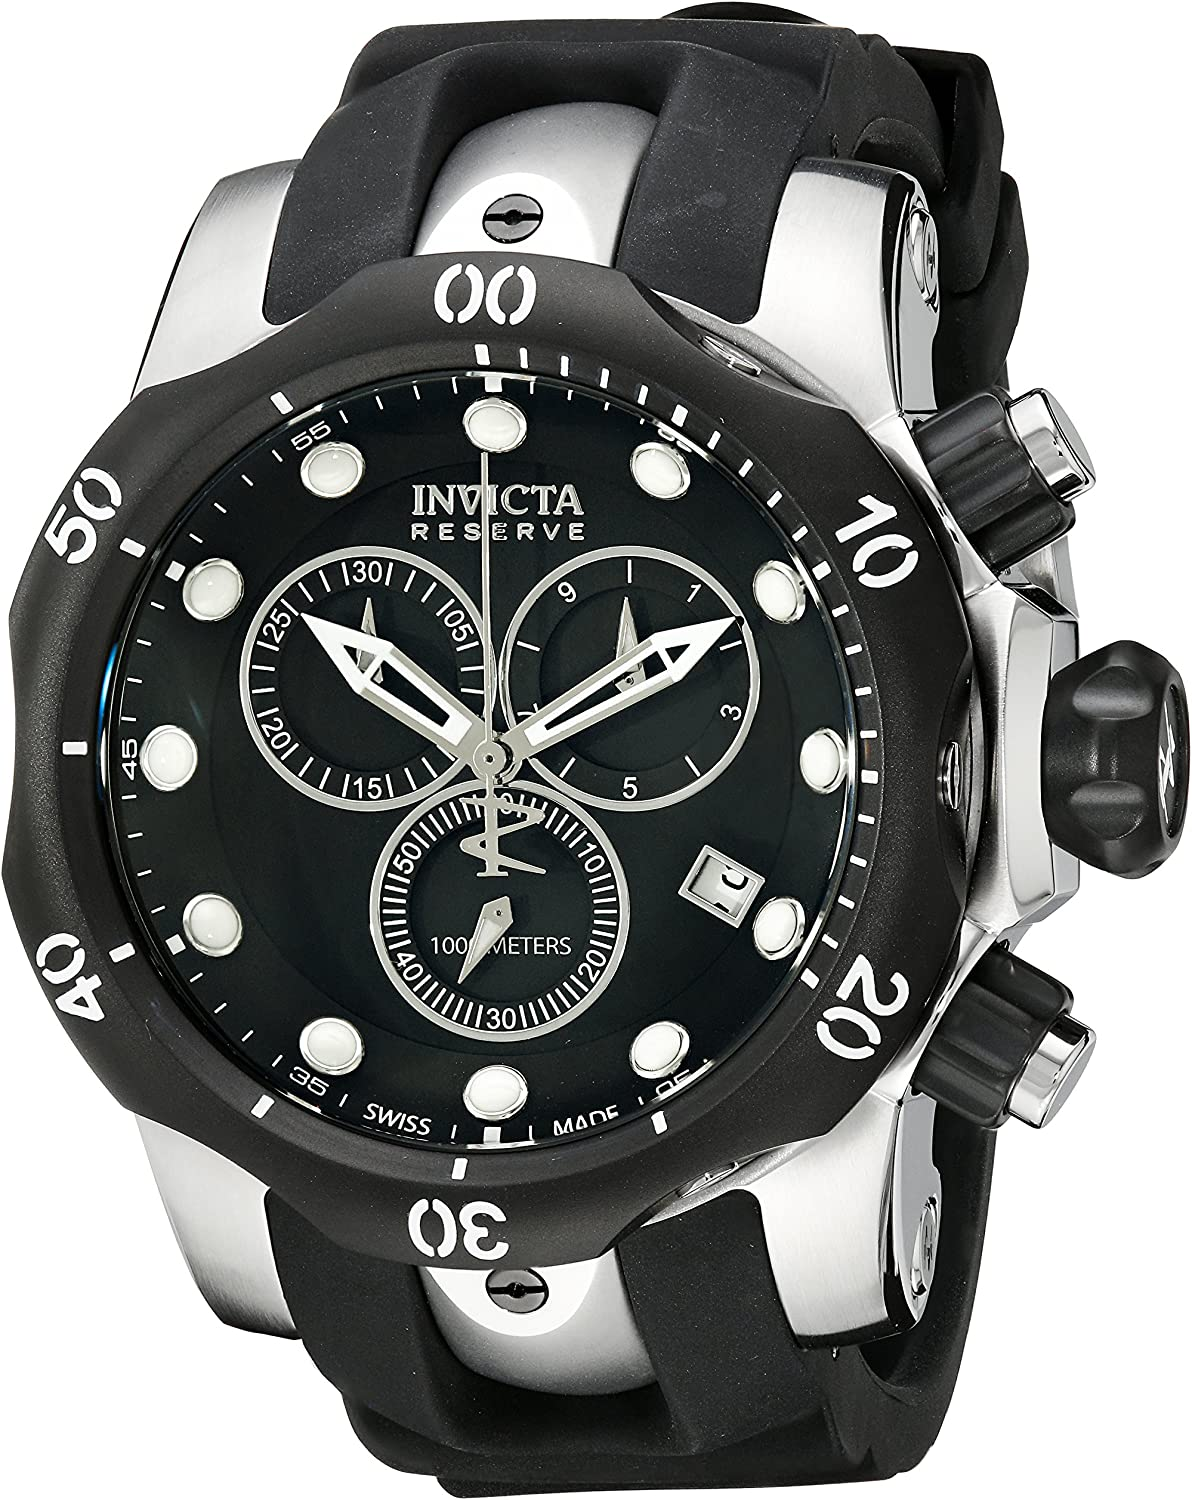 Invicta Men s 5732 Reserve Collection Chronograph Watch